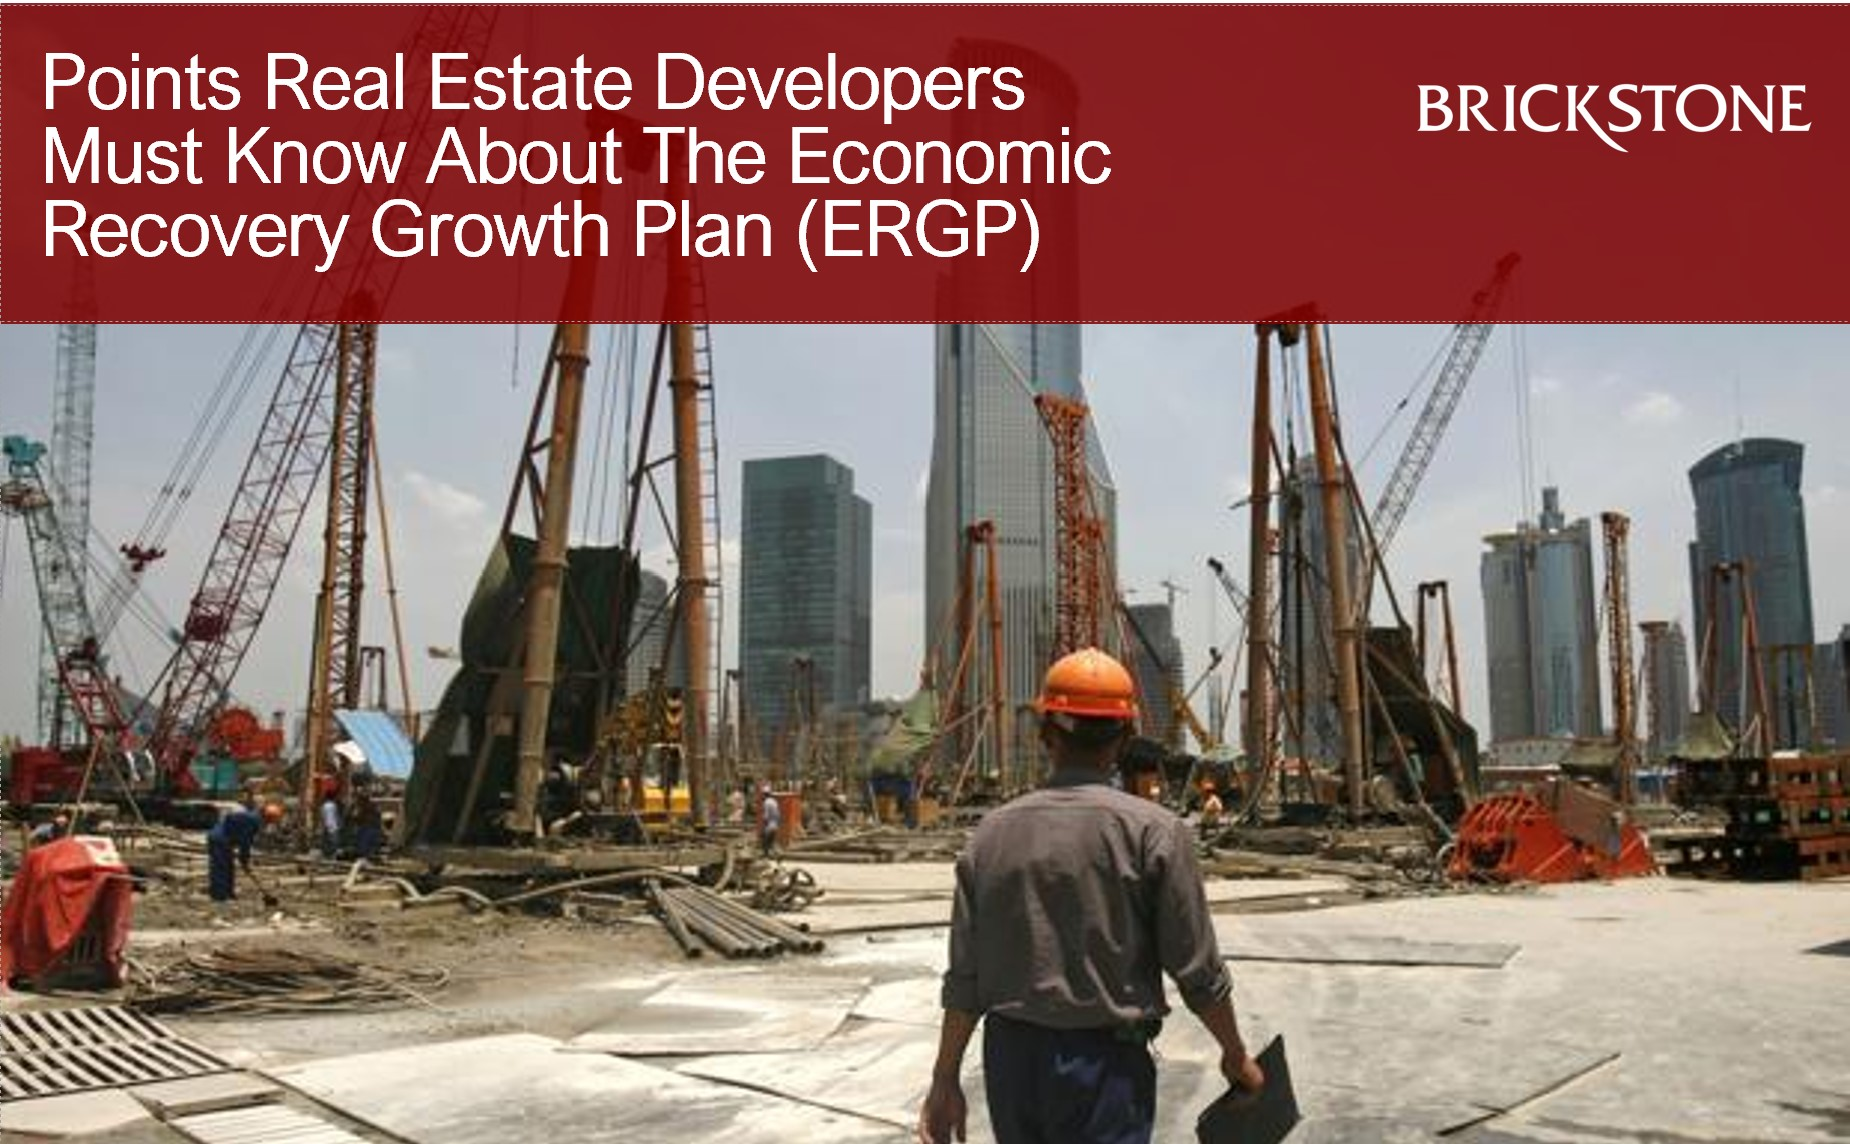 Real Estate Developers about ERGP_Brickstone Africa